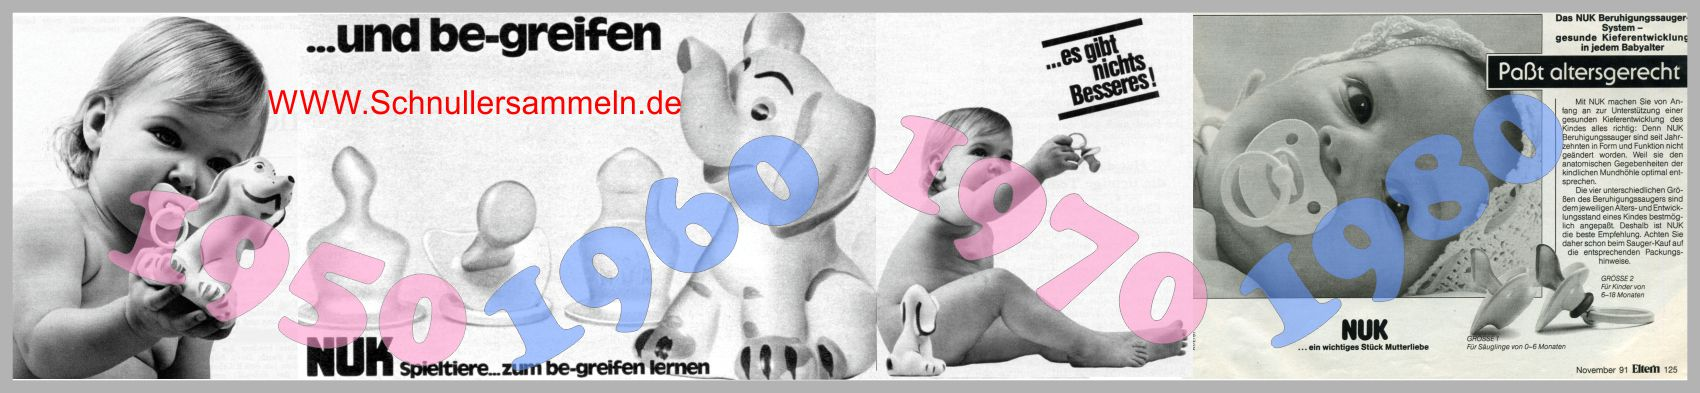 NUK Schnuller Sammeln Schnullersammeln Schnullersammlung Schnullersammlungen Baby  Nuckel Nucki Gerber smoczki soothers Sucette succhietti Sauger dummy soother Pacifier sut sucette tétine ciuccio succhiotto fopspeen smoczek chupeta napp Nuggi chupete pacificador dudlik emzik Pauli aus der Sendung mit der Maus Biene Maja Hello Kitty Winni Pooh Baby Blue Rose Donald Daisy Classic alt Classic New Trendline Freetyle Genius Color Happy Day Happy Kids Fashion Antik Alt Medic Pro Bibi Avent Baby Dream Babylove Nip MAM Neo Chicco Frank  Nuby Tommee Tippee Babycare Baby one Real Edeka Rewe Kaufen DHL Hermes DPD GLS Amazon Deutsche Post Fußball Weltmeisterschaft Brasilien 2014 Deutschland Belgien Niederlande Frankreich England Italien Spanien Portugal USA Geers  Schnullerfee Nuckelfee Nuckifee Fee Schnuller baum Schnuller Bäume